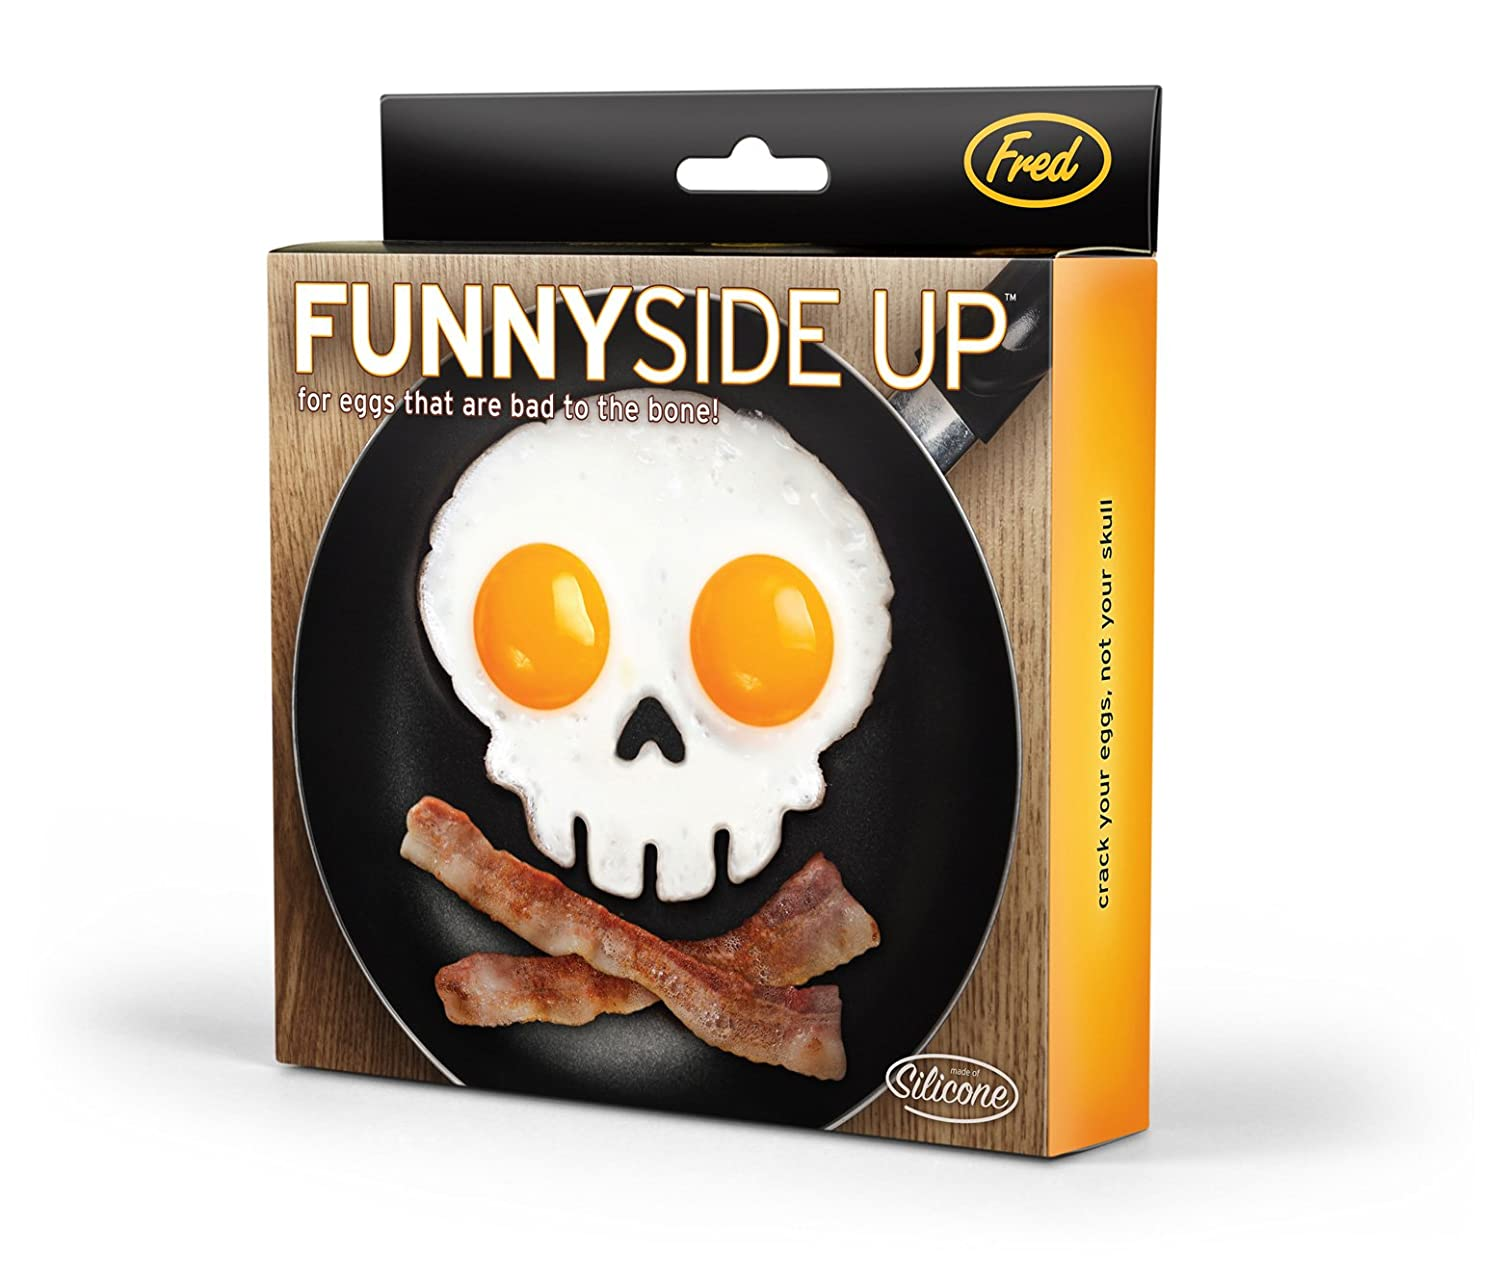 Amazon.com: Fred FUNNY SIDE UP Silicone Egg Mold, Skull: Egg ...